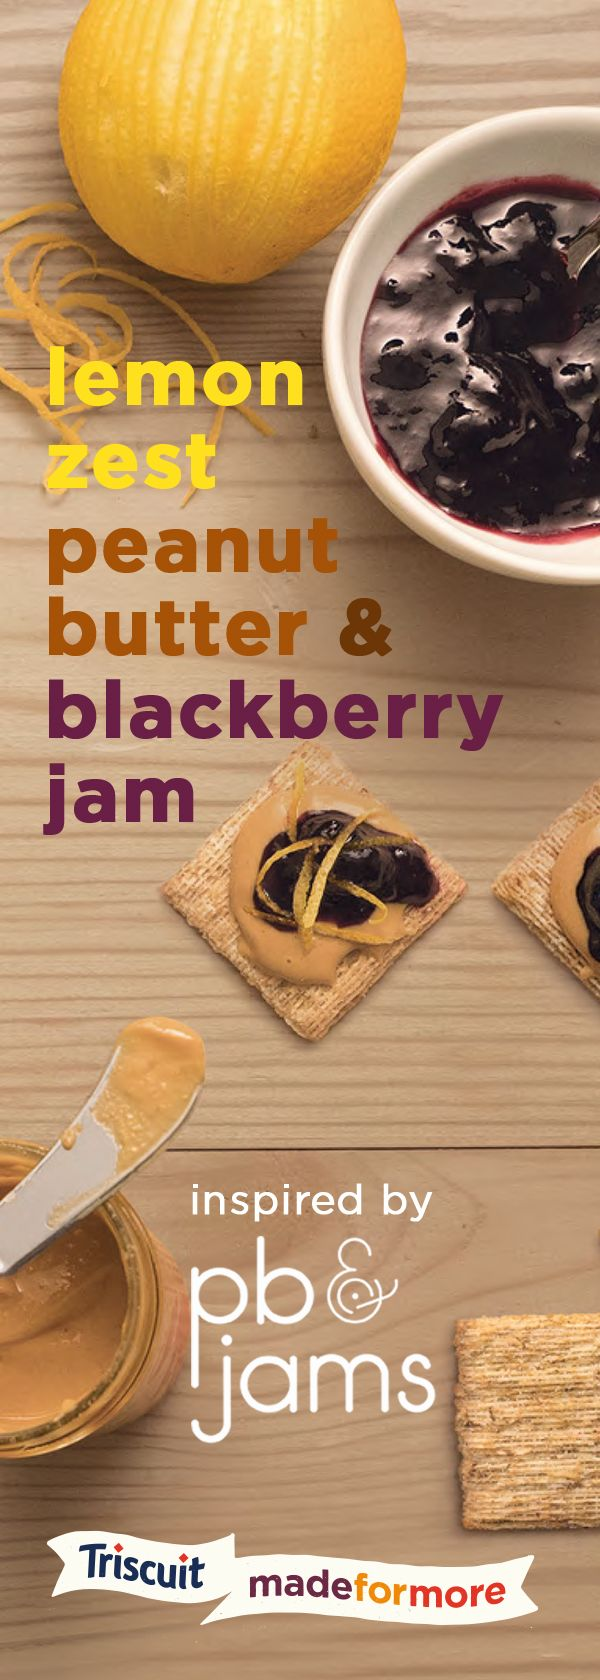 Inspired by our friends at PB&Jams, we present to you a special take on your traditional pb&j recipe…start with peanut butter on a TRISCUIT cracker, spoon on a little blackberry jam, top with lemon zest and enjoy!